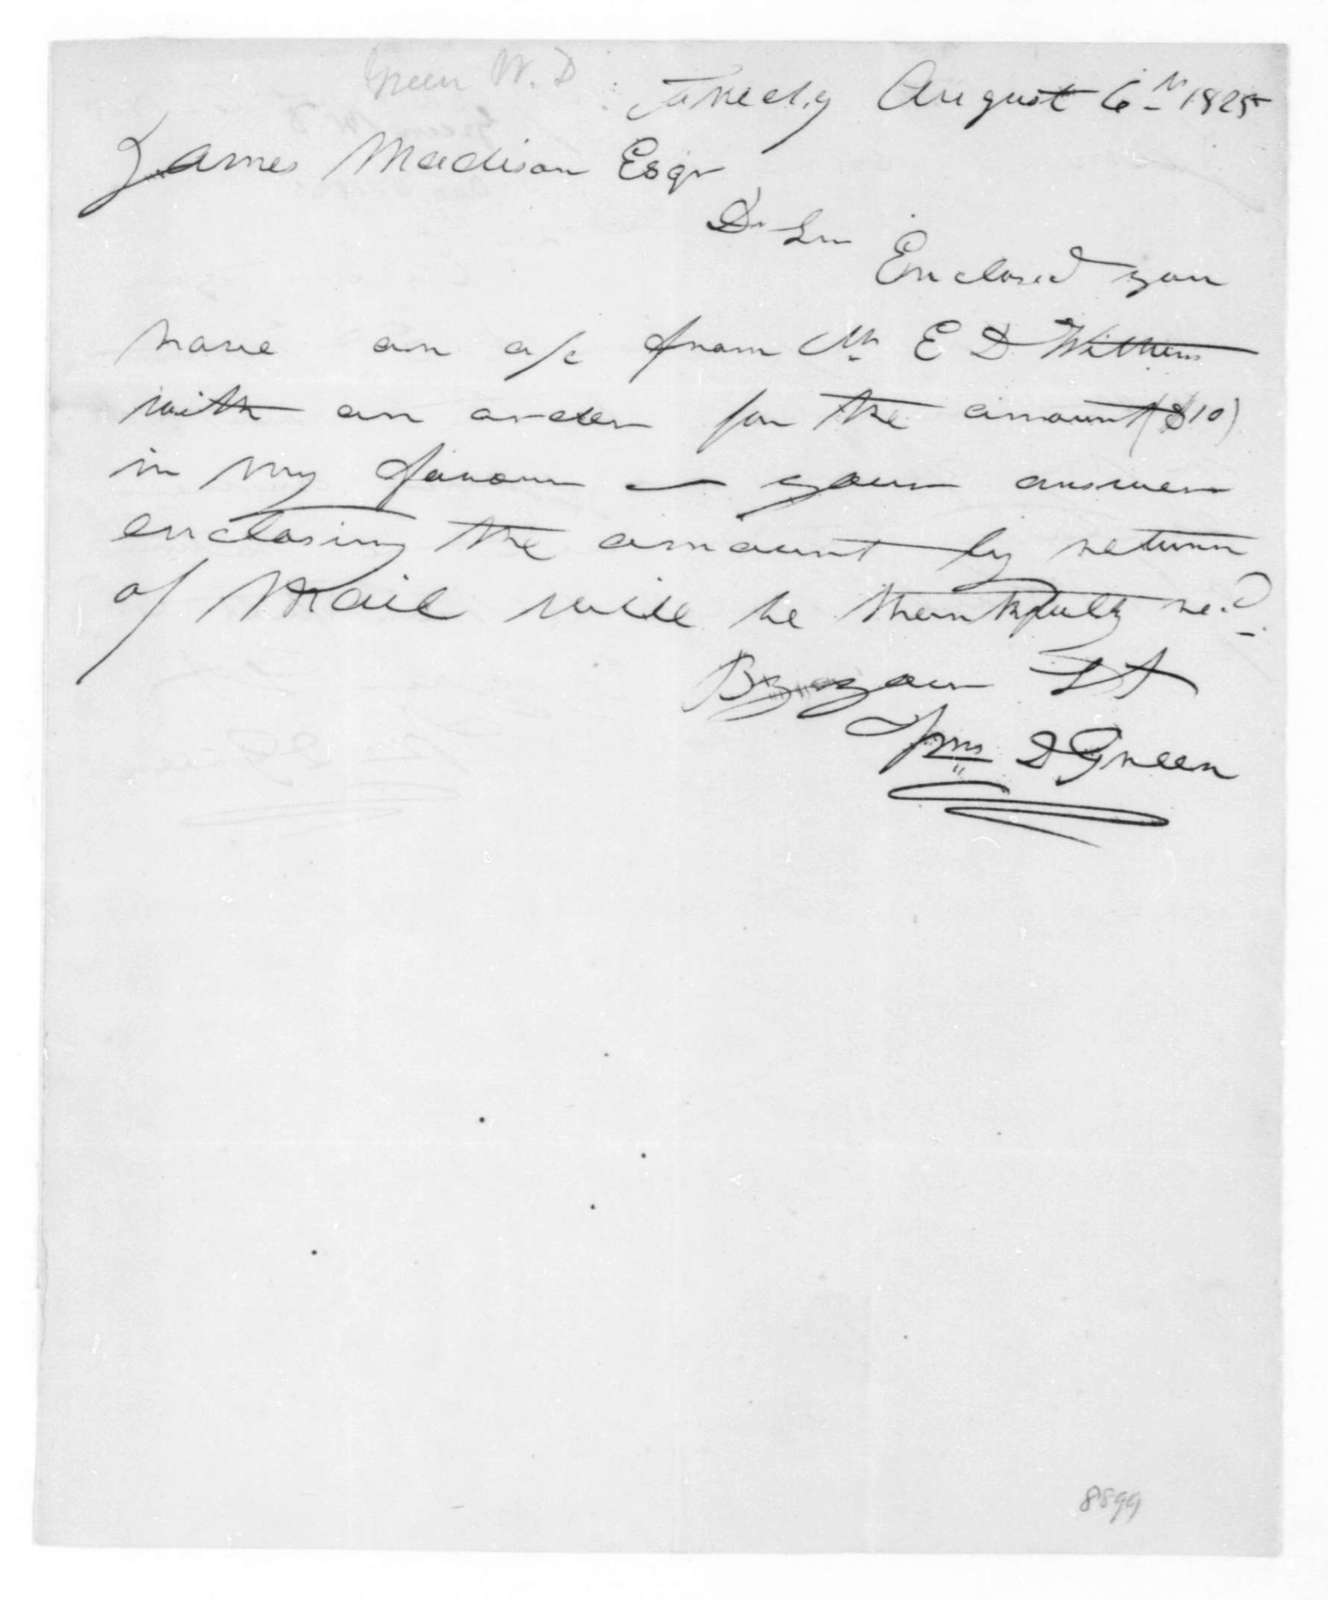 William D. Green to James Madison, August 6, 1825.